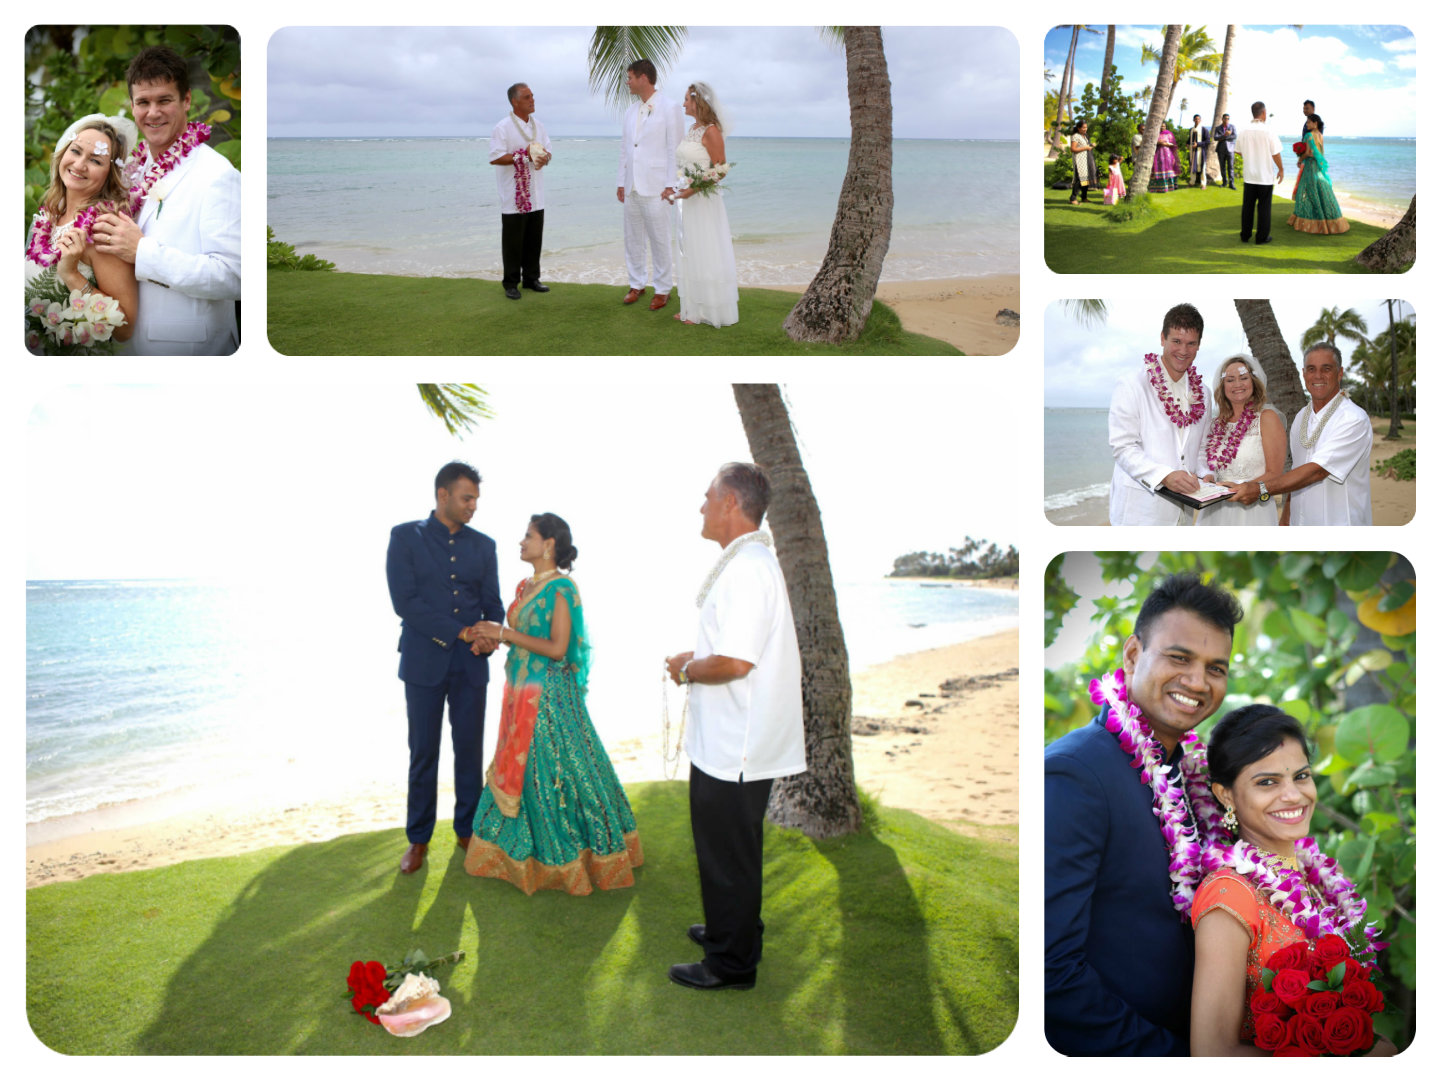 Simply delightful holiday Hawaii weddings